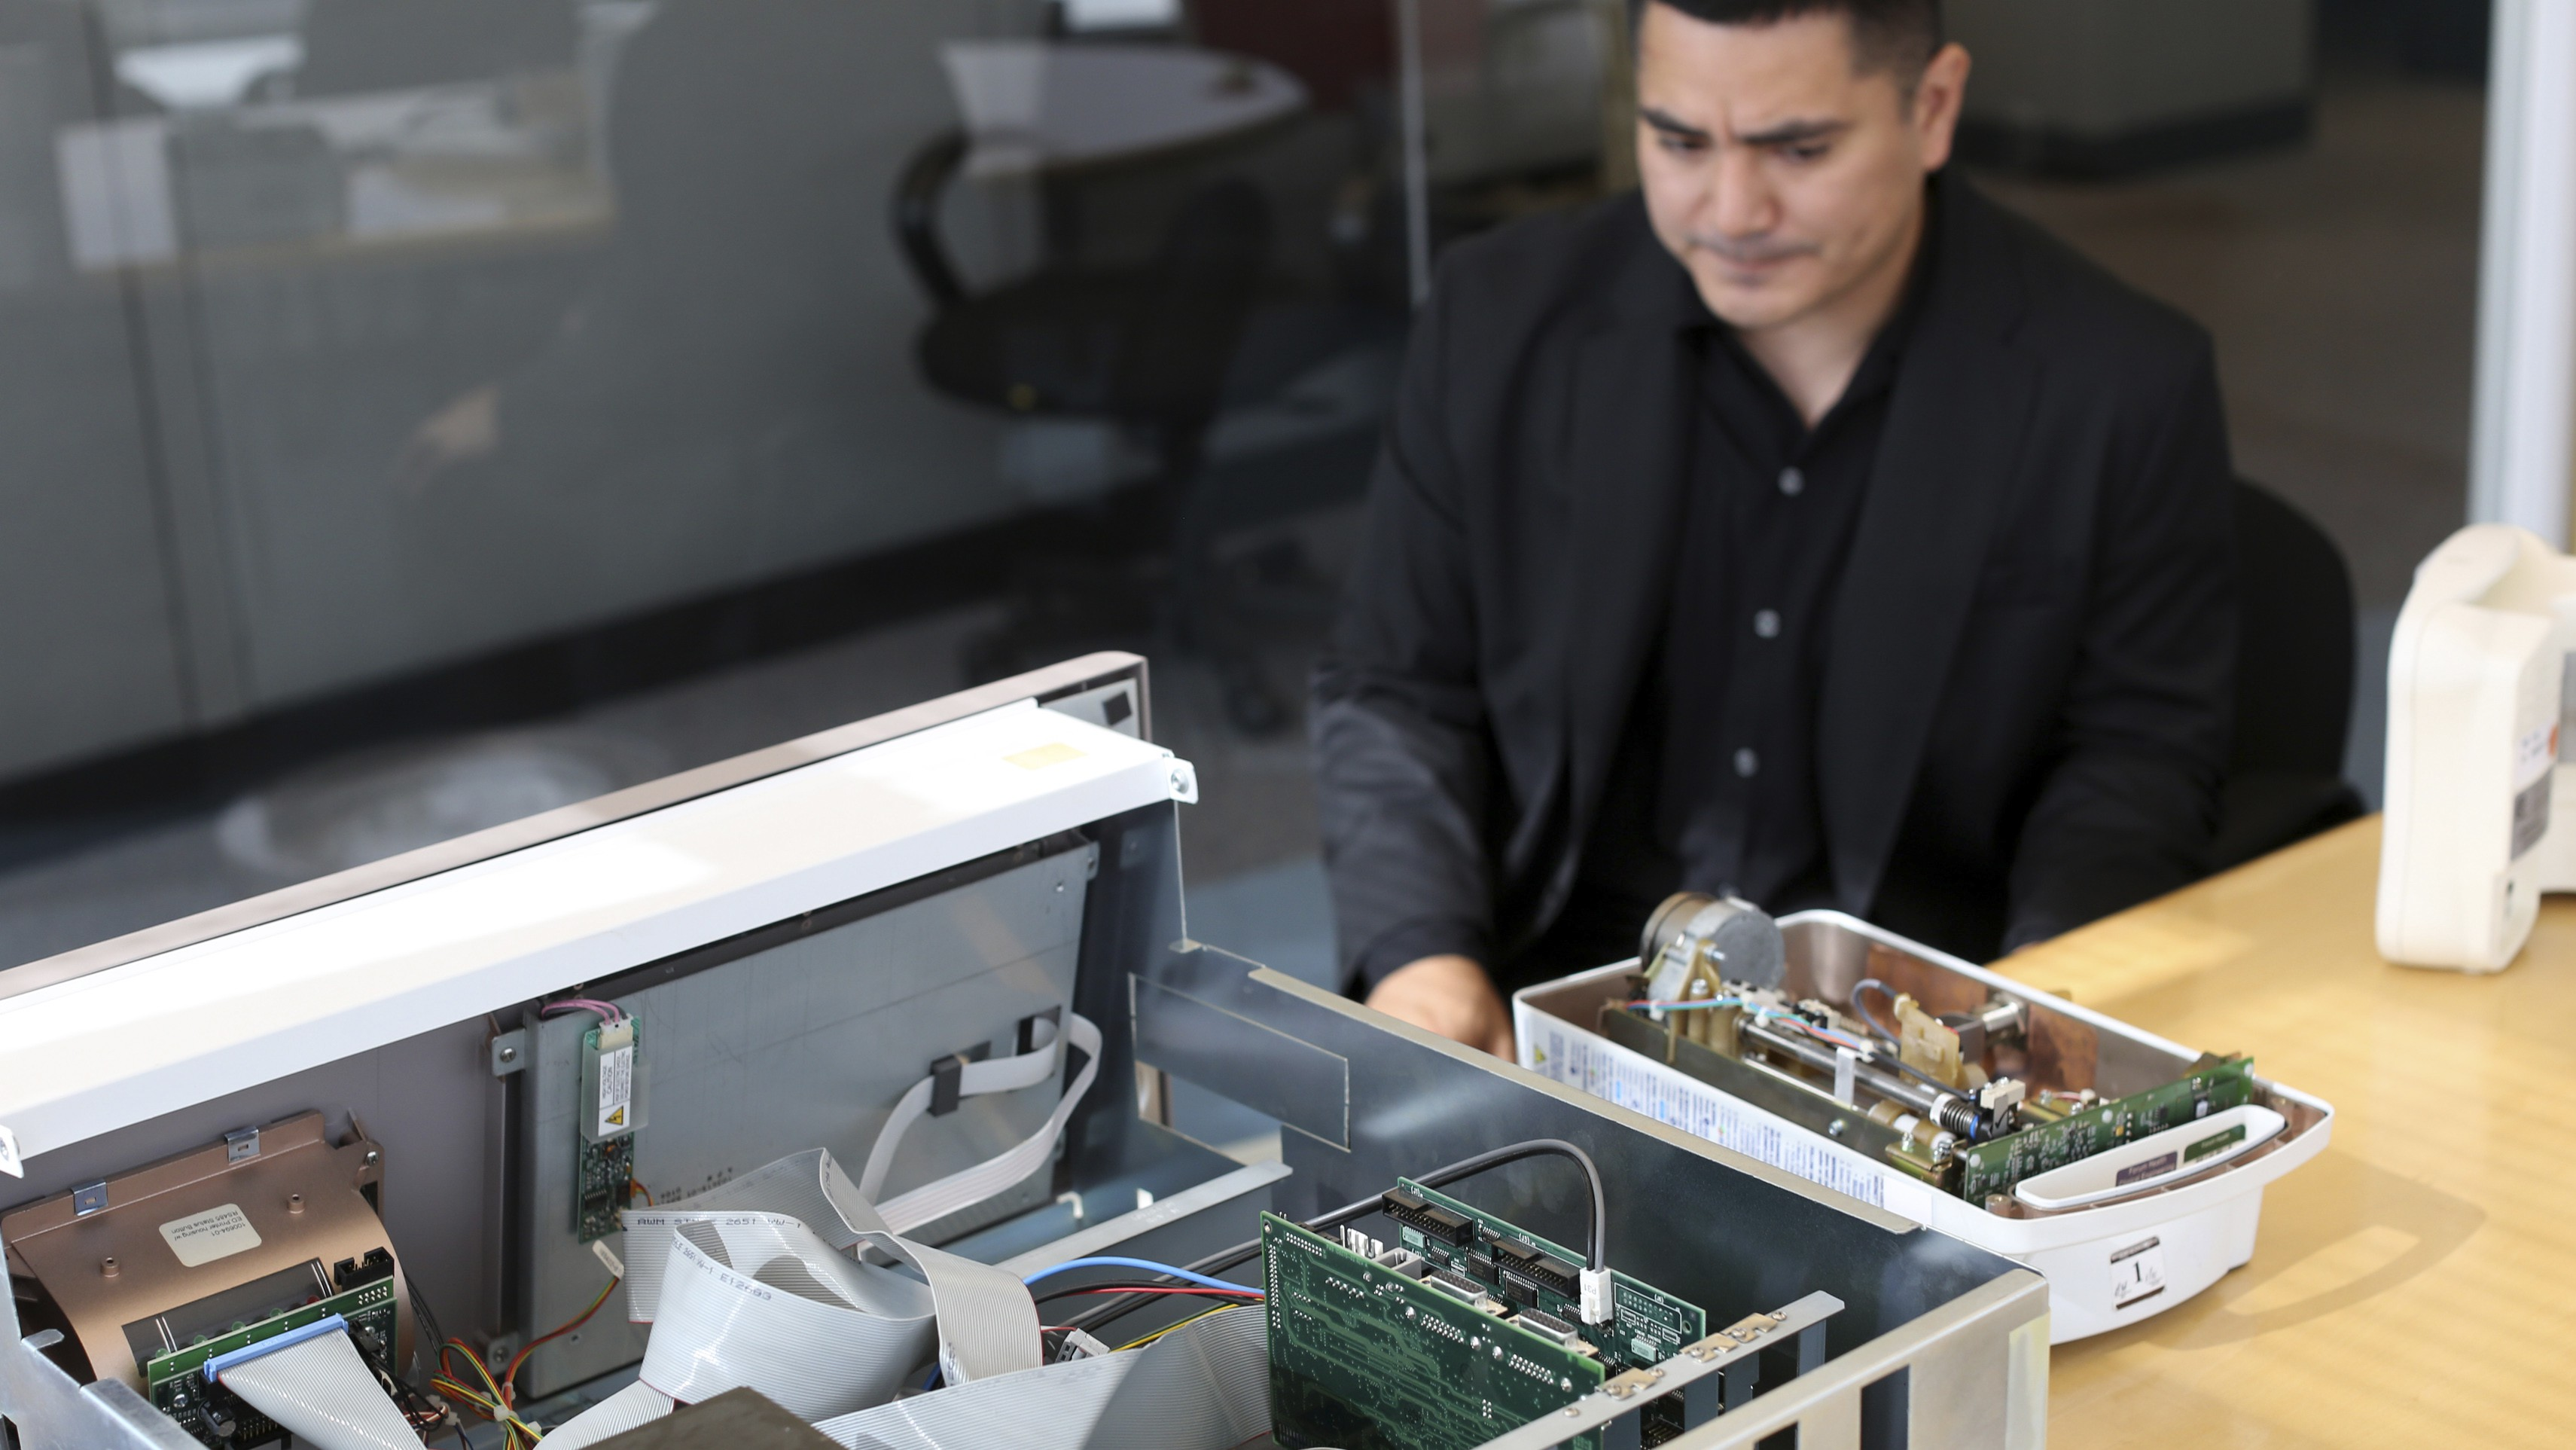 Cybersecurity researcher Billy Rios searches for flaws in medical equipment.